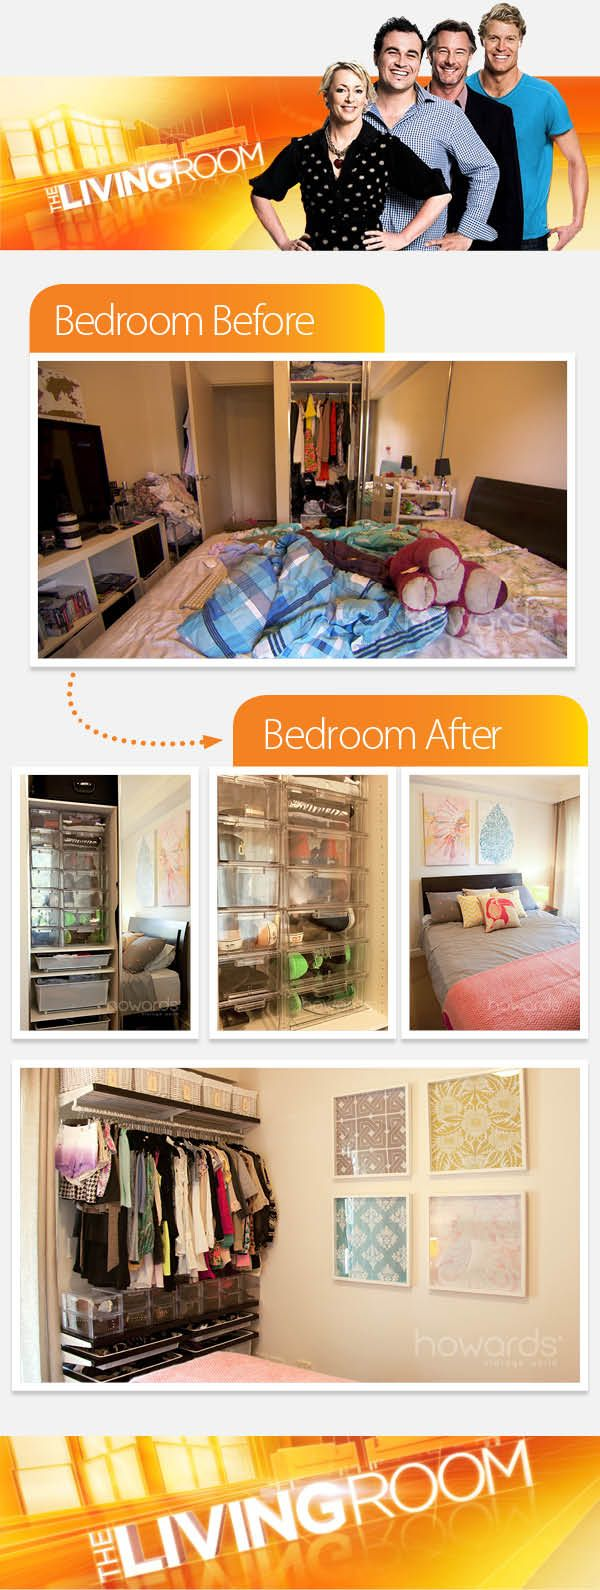 Before and after shot of Bedroom